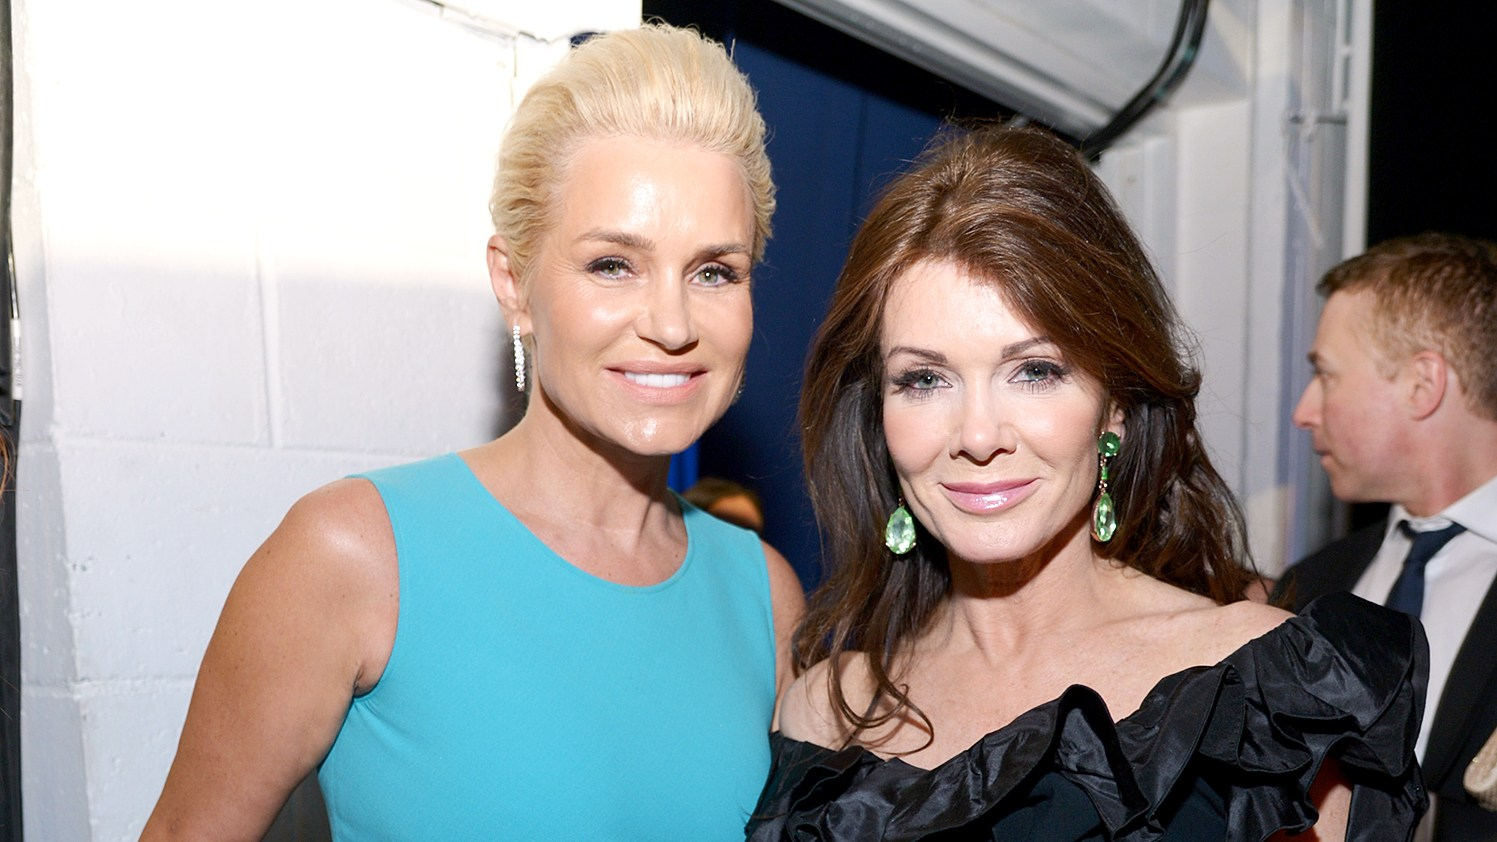 Yolanda Foster and Lisa Vanderpump